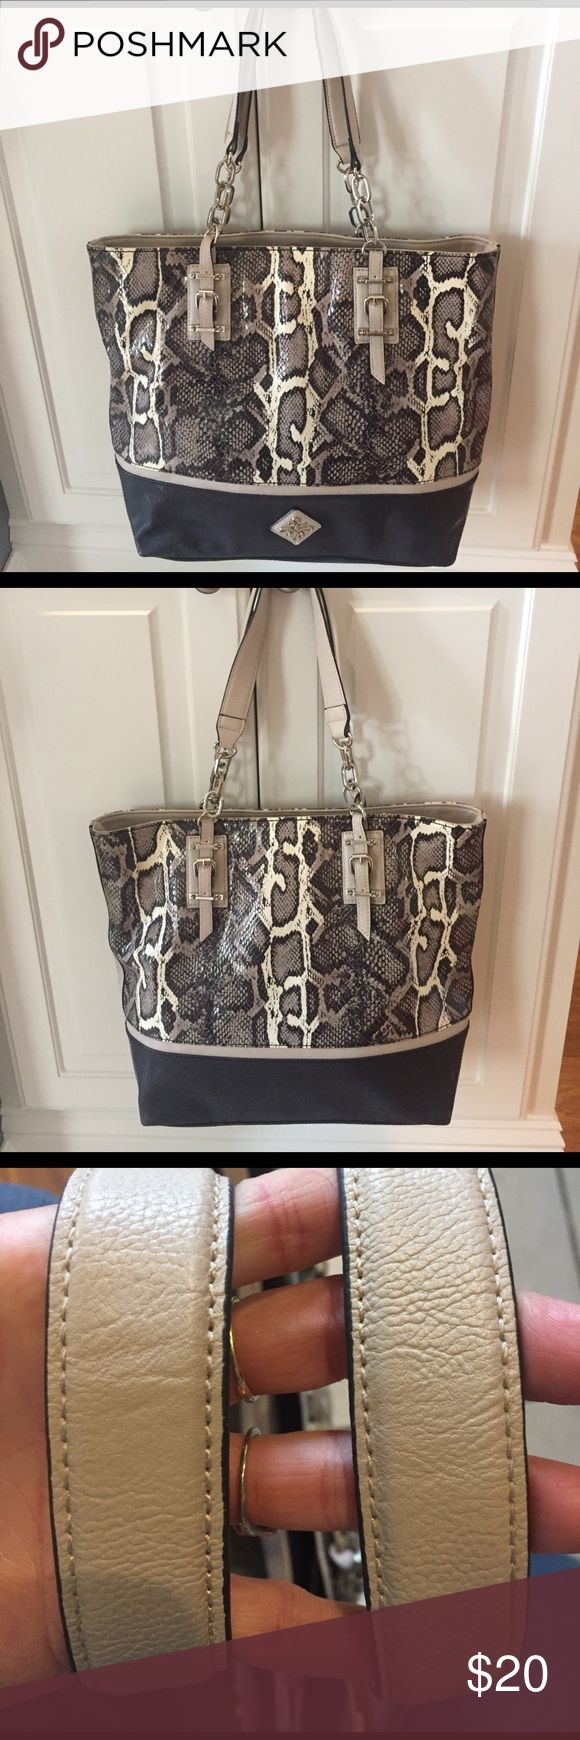 💕Simply Vera Wang Handbag Absolutely new condition inside and out gorgeous bag. Measures 12X13 Simply Vera Vera Wang Bags Totes